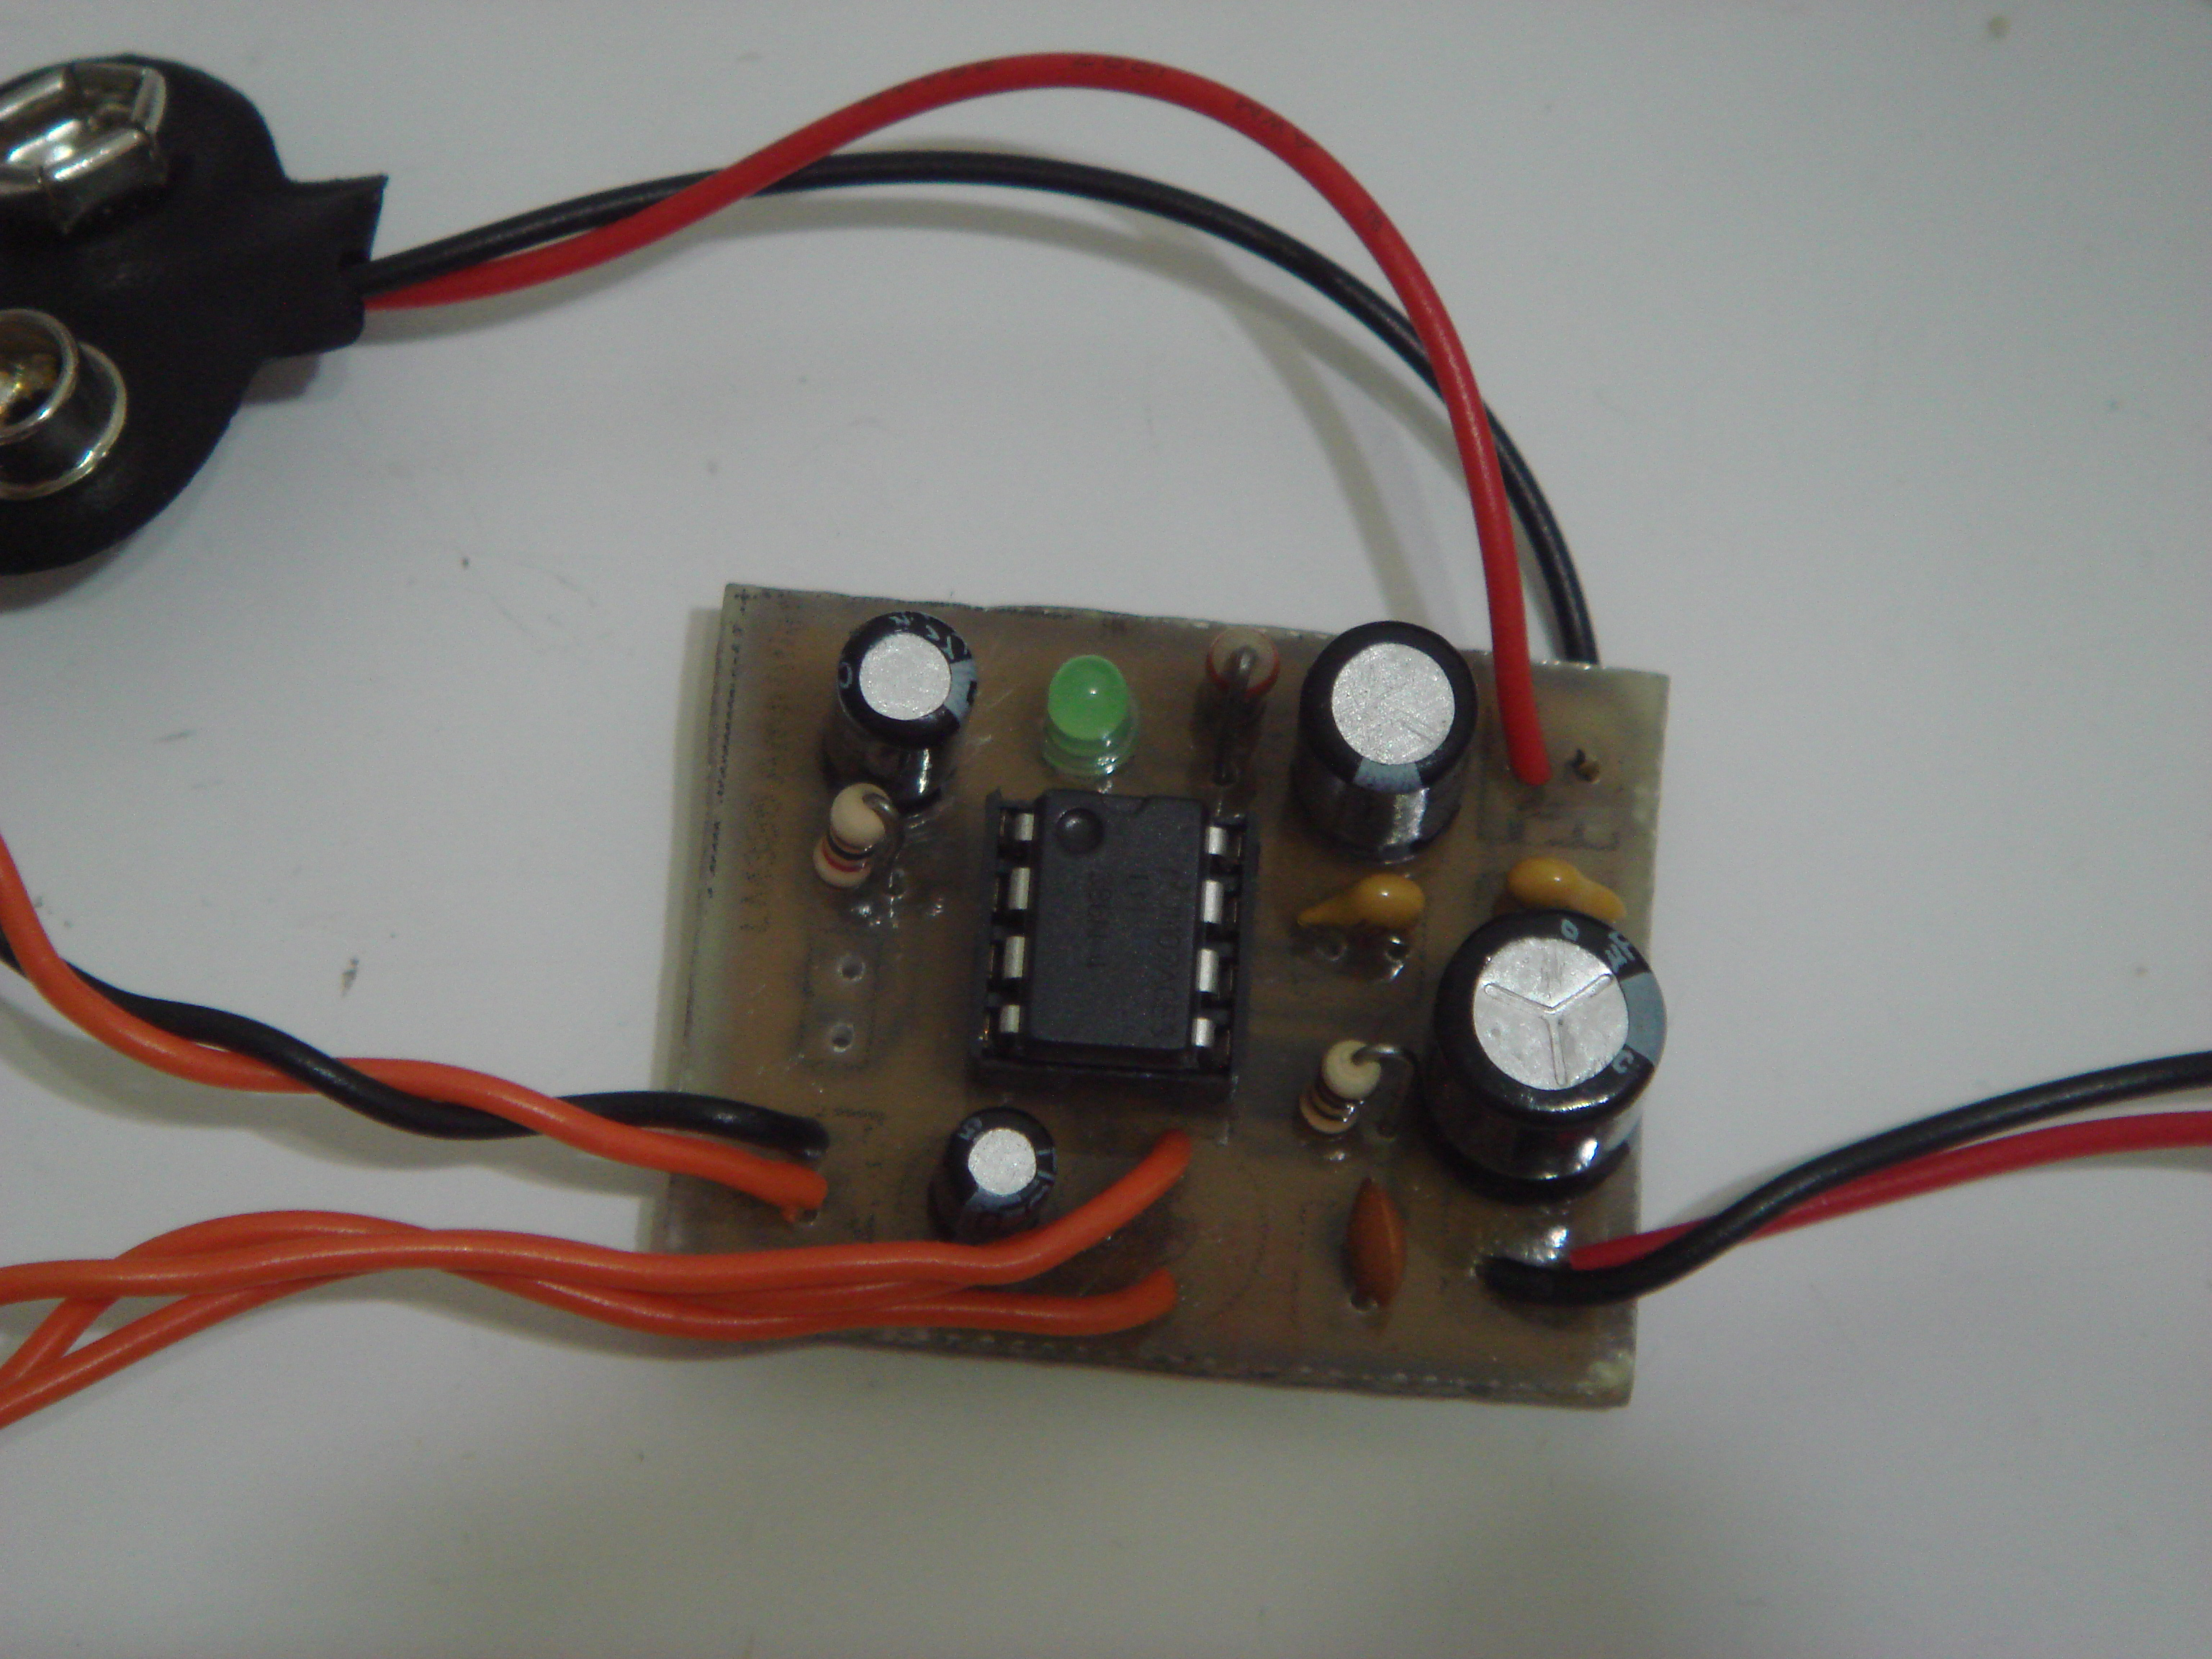 Lm386 Low Voltage Audio Power Amplifier Zx Lee The Infrared Receiver Circuit Amplifiercircuit Diagram Top View Of Pcb